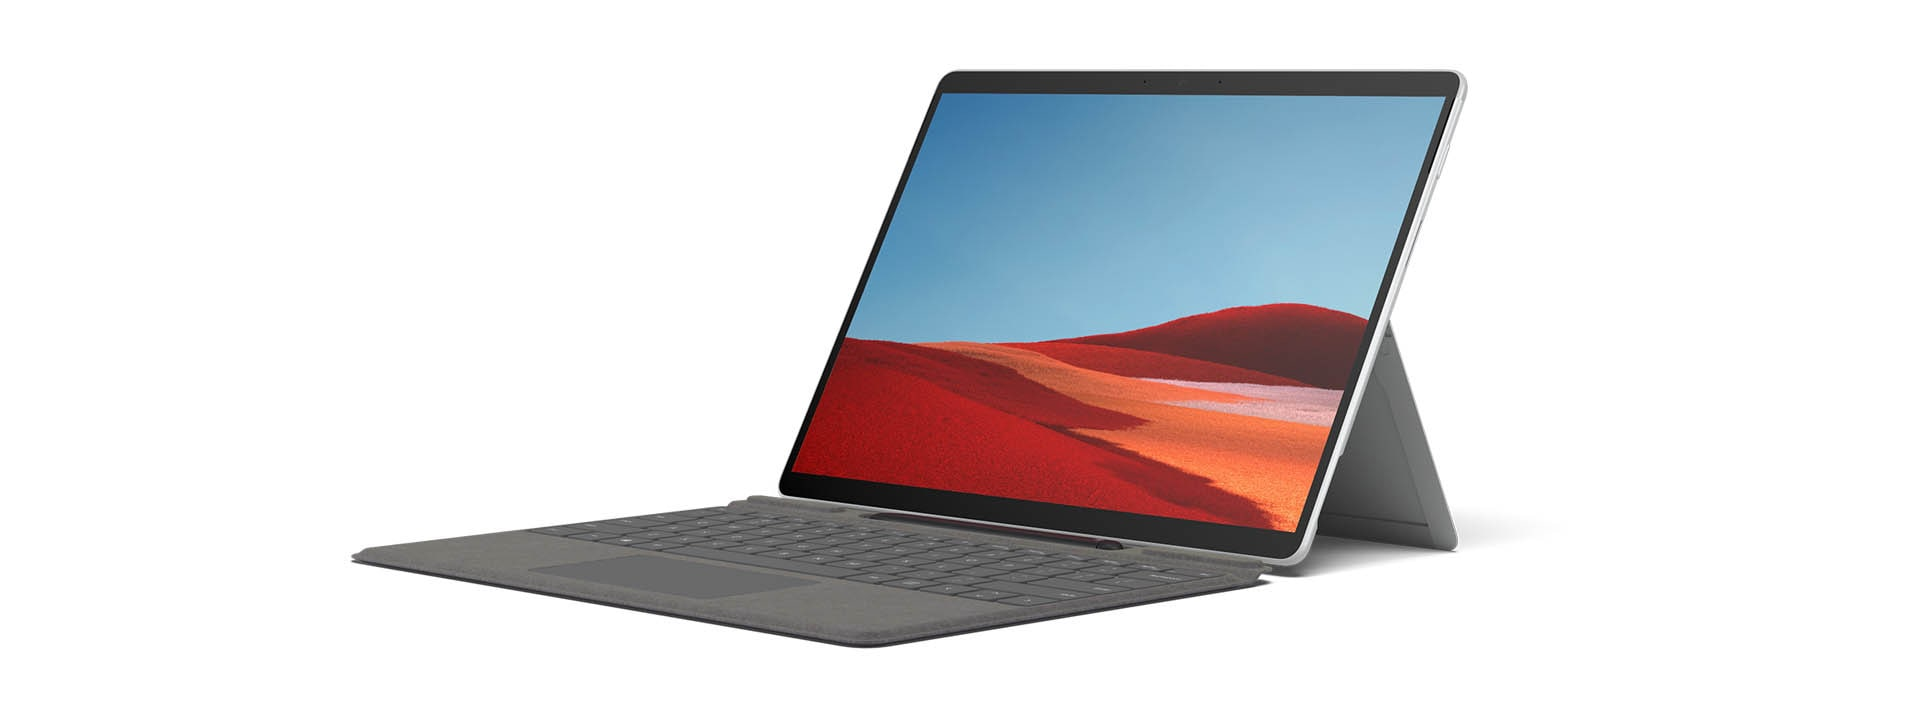 A Surface Pro X in Laptop mode